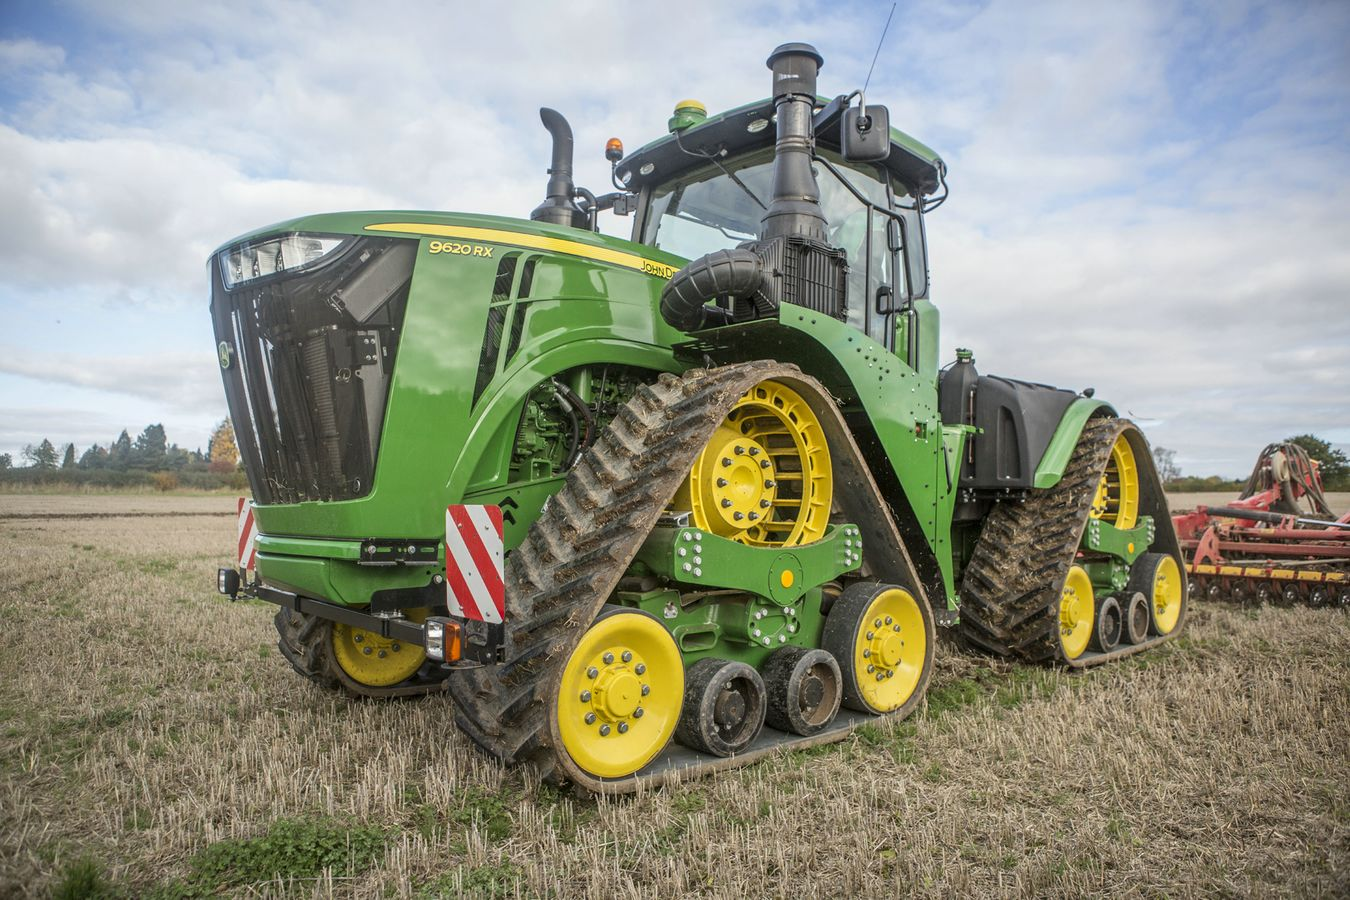 New John Deere kit at CropTec - HRN Tractors